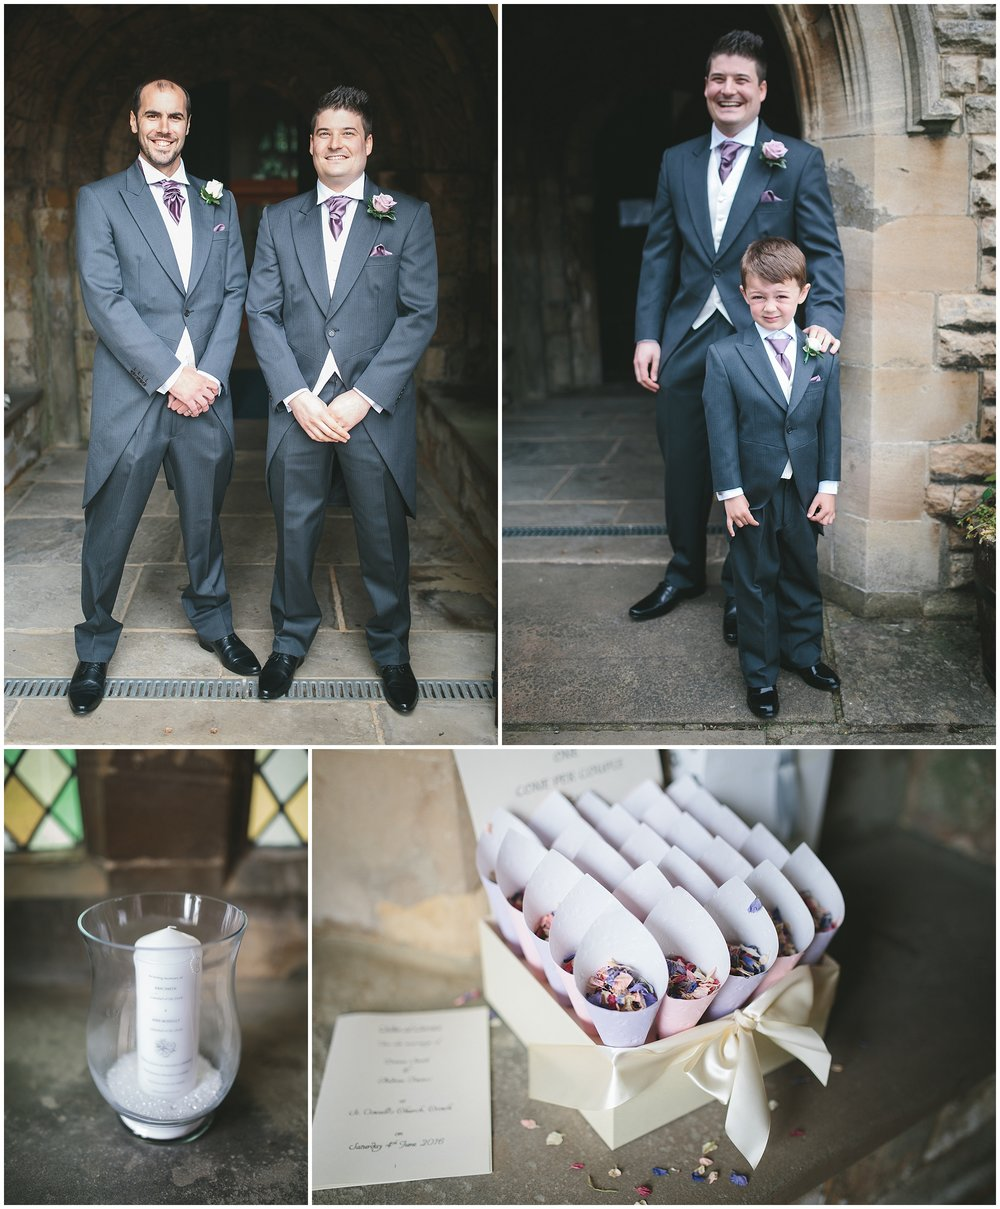 crowle church wedding